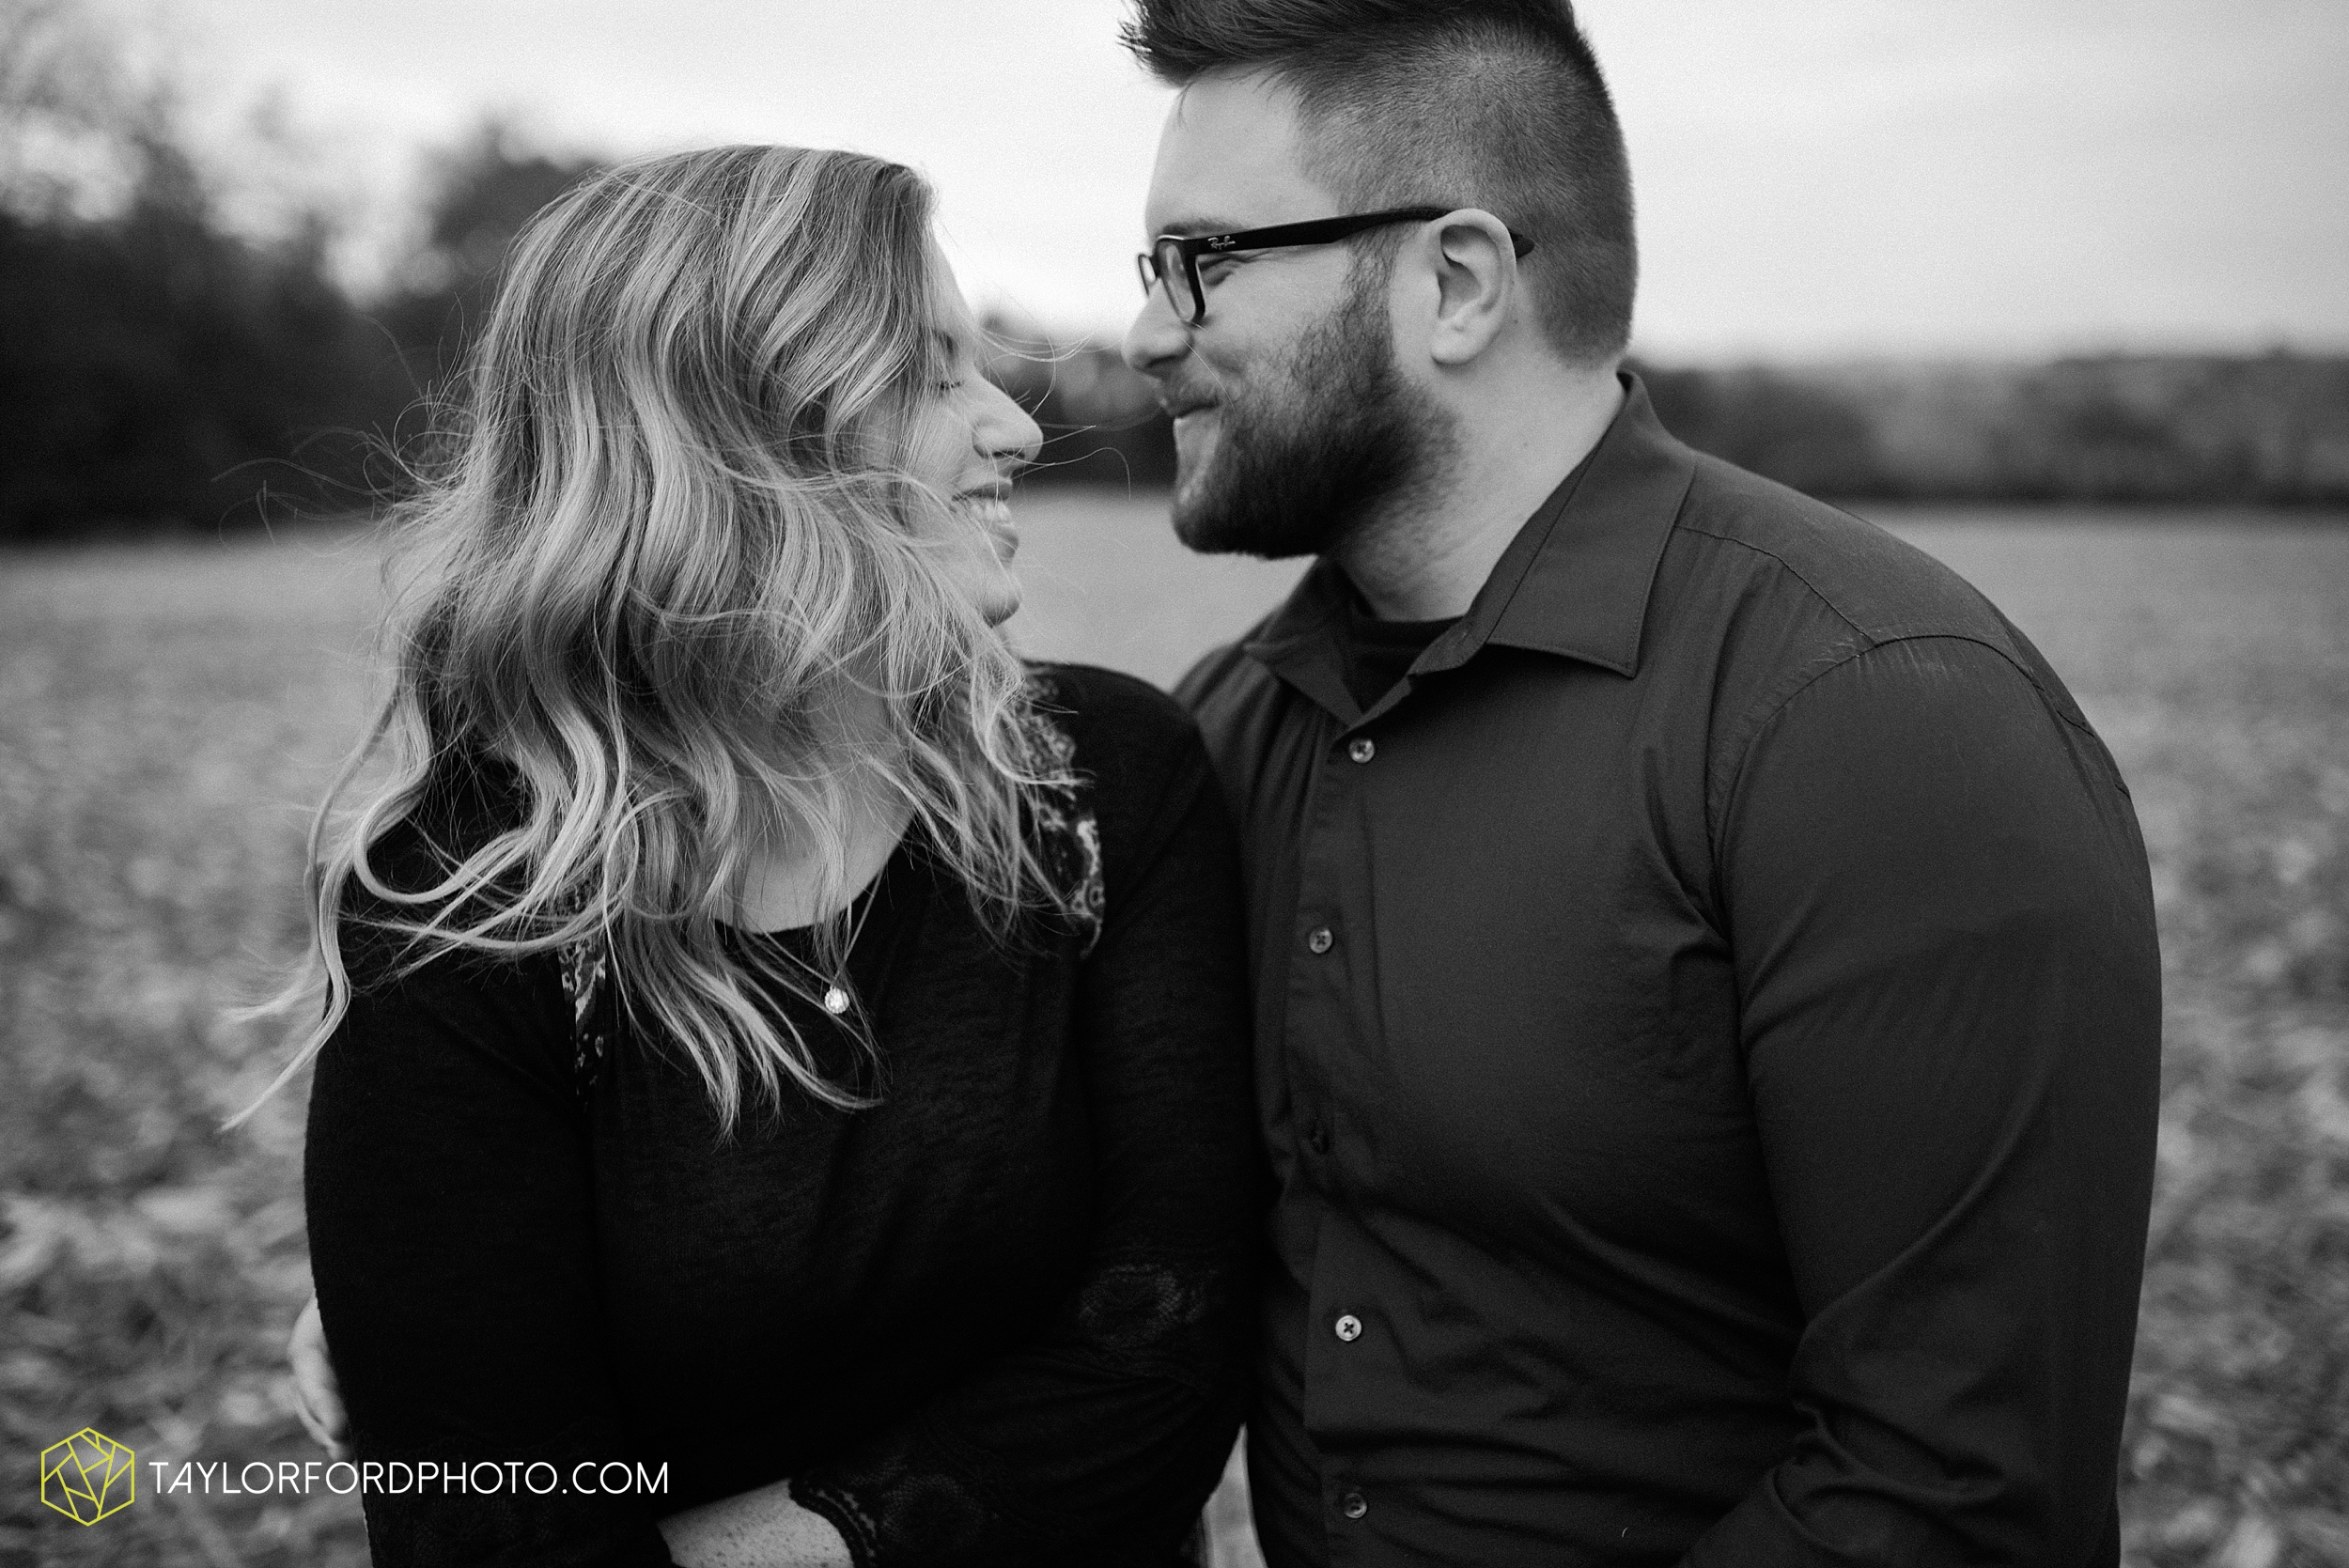 downtown-fort-wayne-engagement-foster-park-bravas-wunderkamer-fox-island-quarry-photographer-taylor-ford-photography_0976.jpg